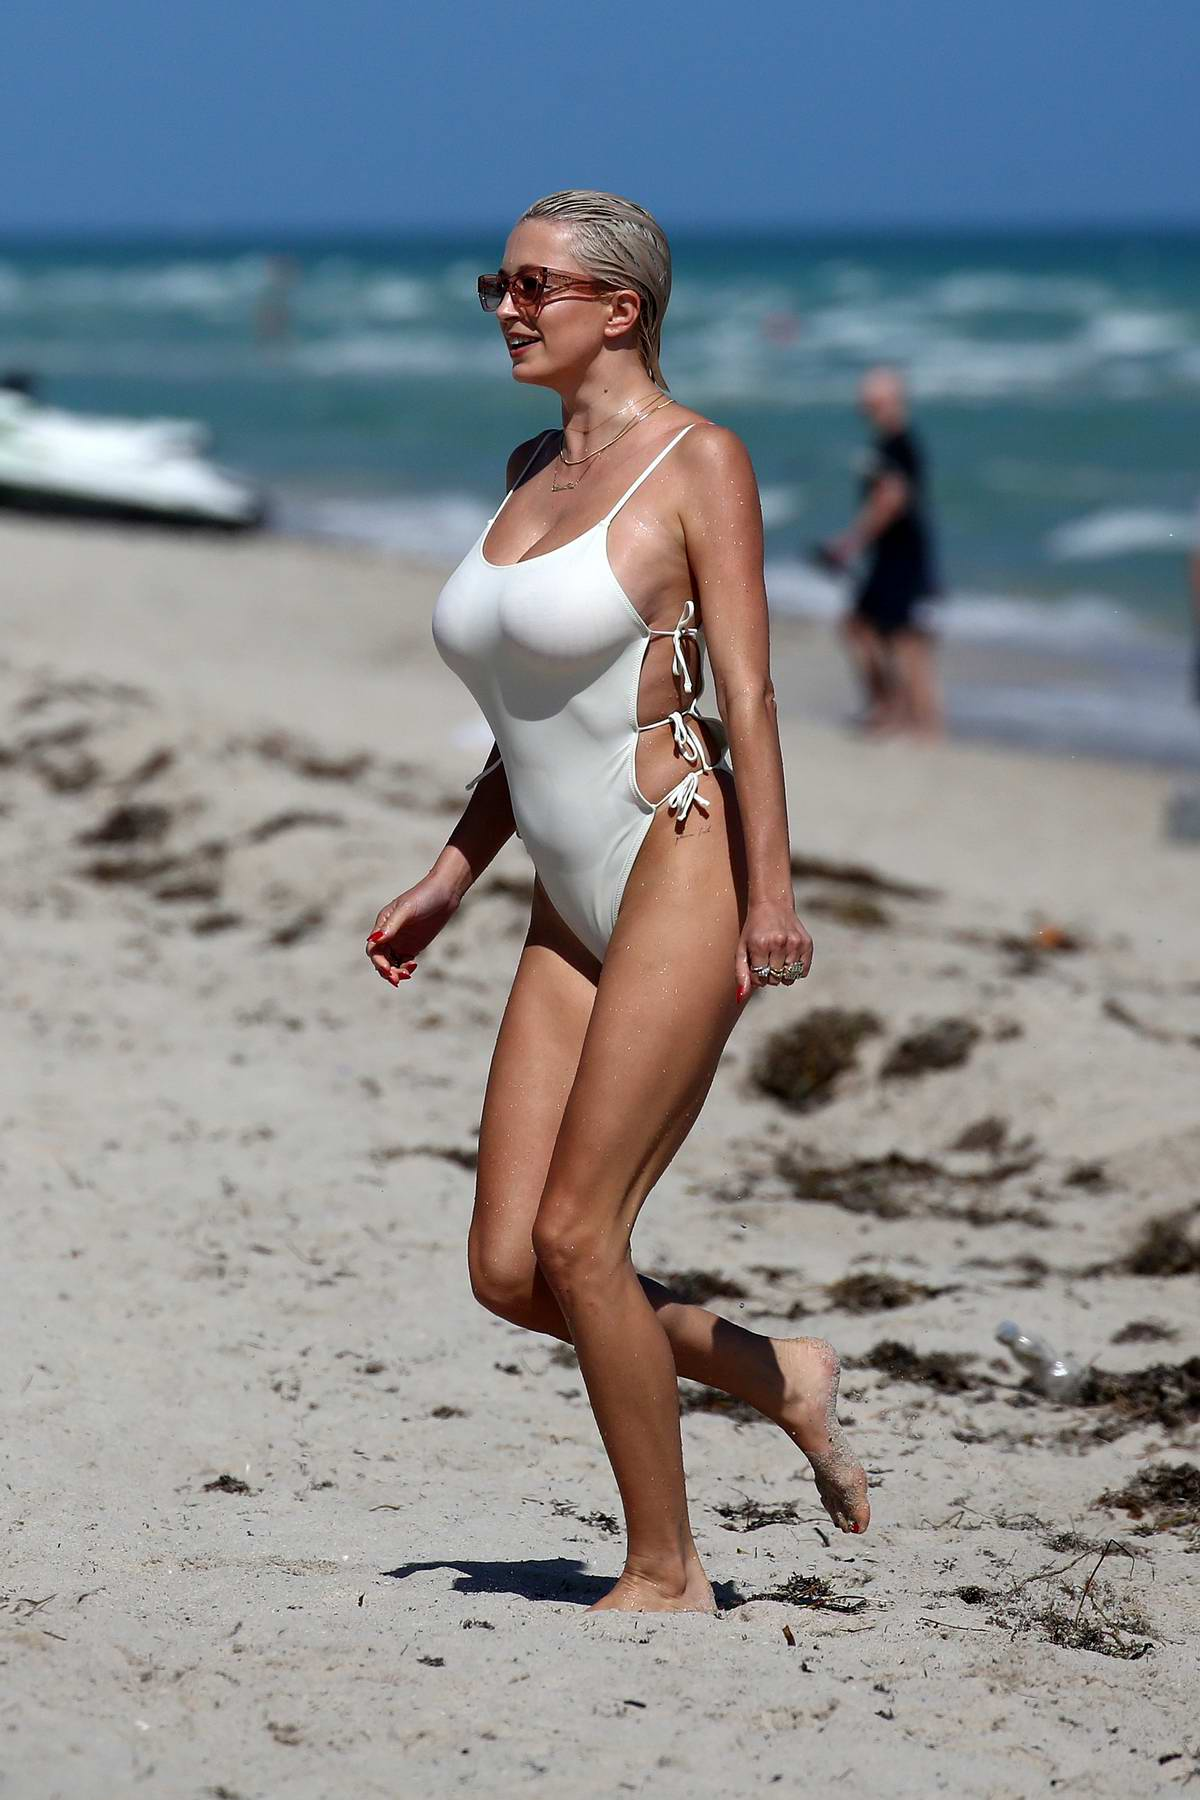 Caroline Vreeland wears a white swimsuit as she hits the beach in Miami, Florida